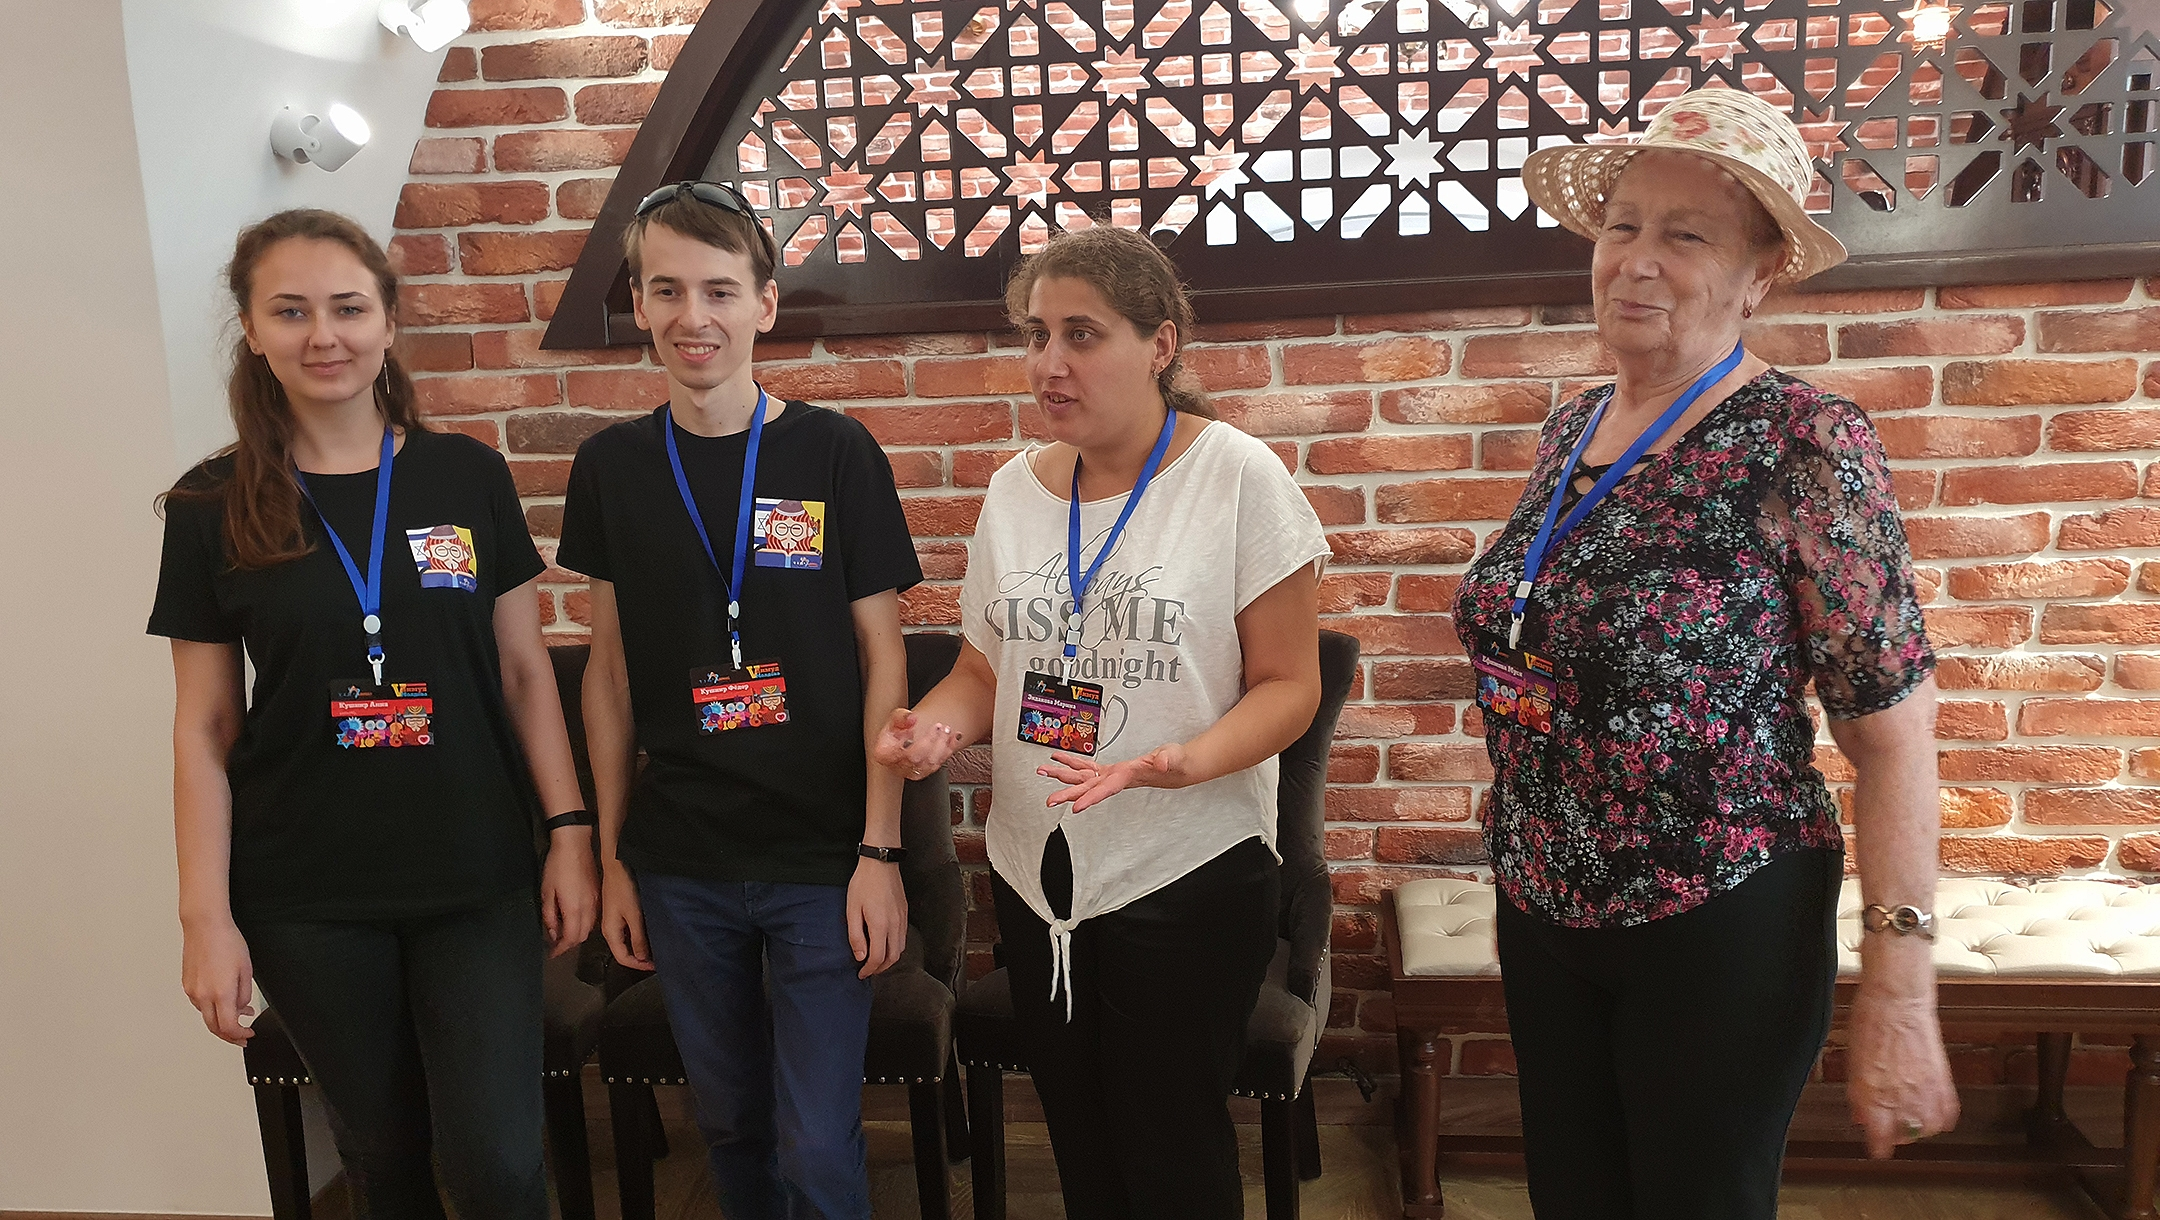 Musia Efimova, right, Marina Edakova and Fiodor and Anna Kushnir at the Wooden Synagogue of Chisinau, Moldova on Aug. 26, 2019. (Cnaan Liphshiz)